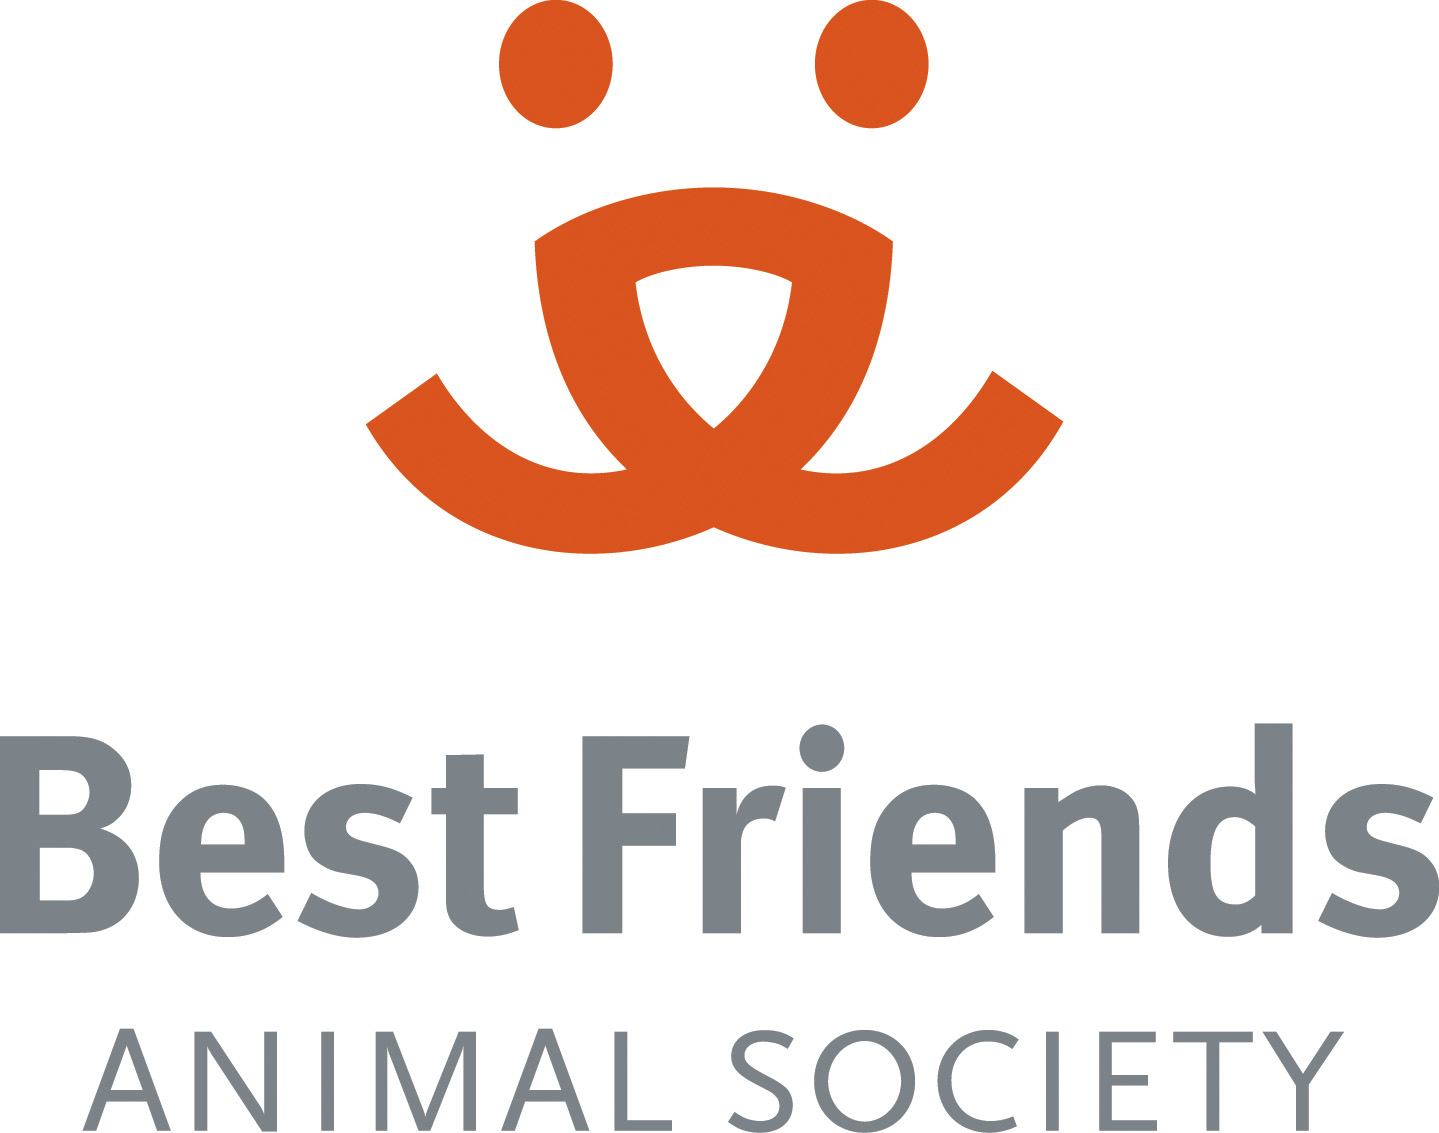 Best Friends Animal Society Logo - Best Friends Animal Society | TV Access PSA Spot Source